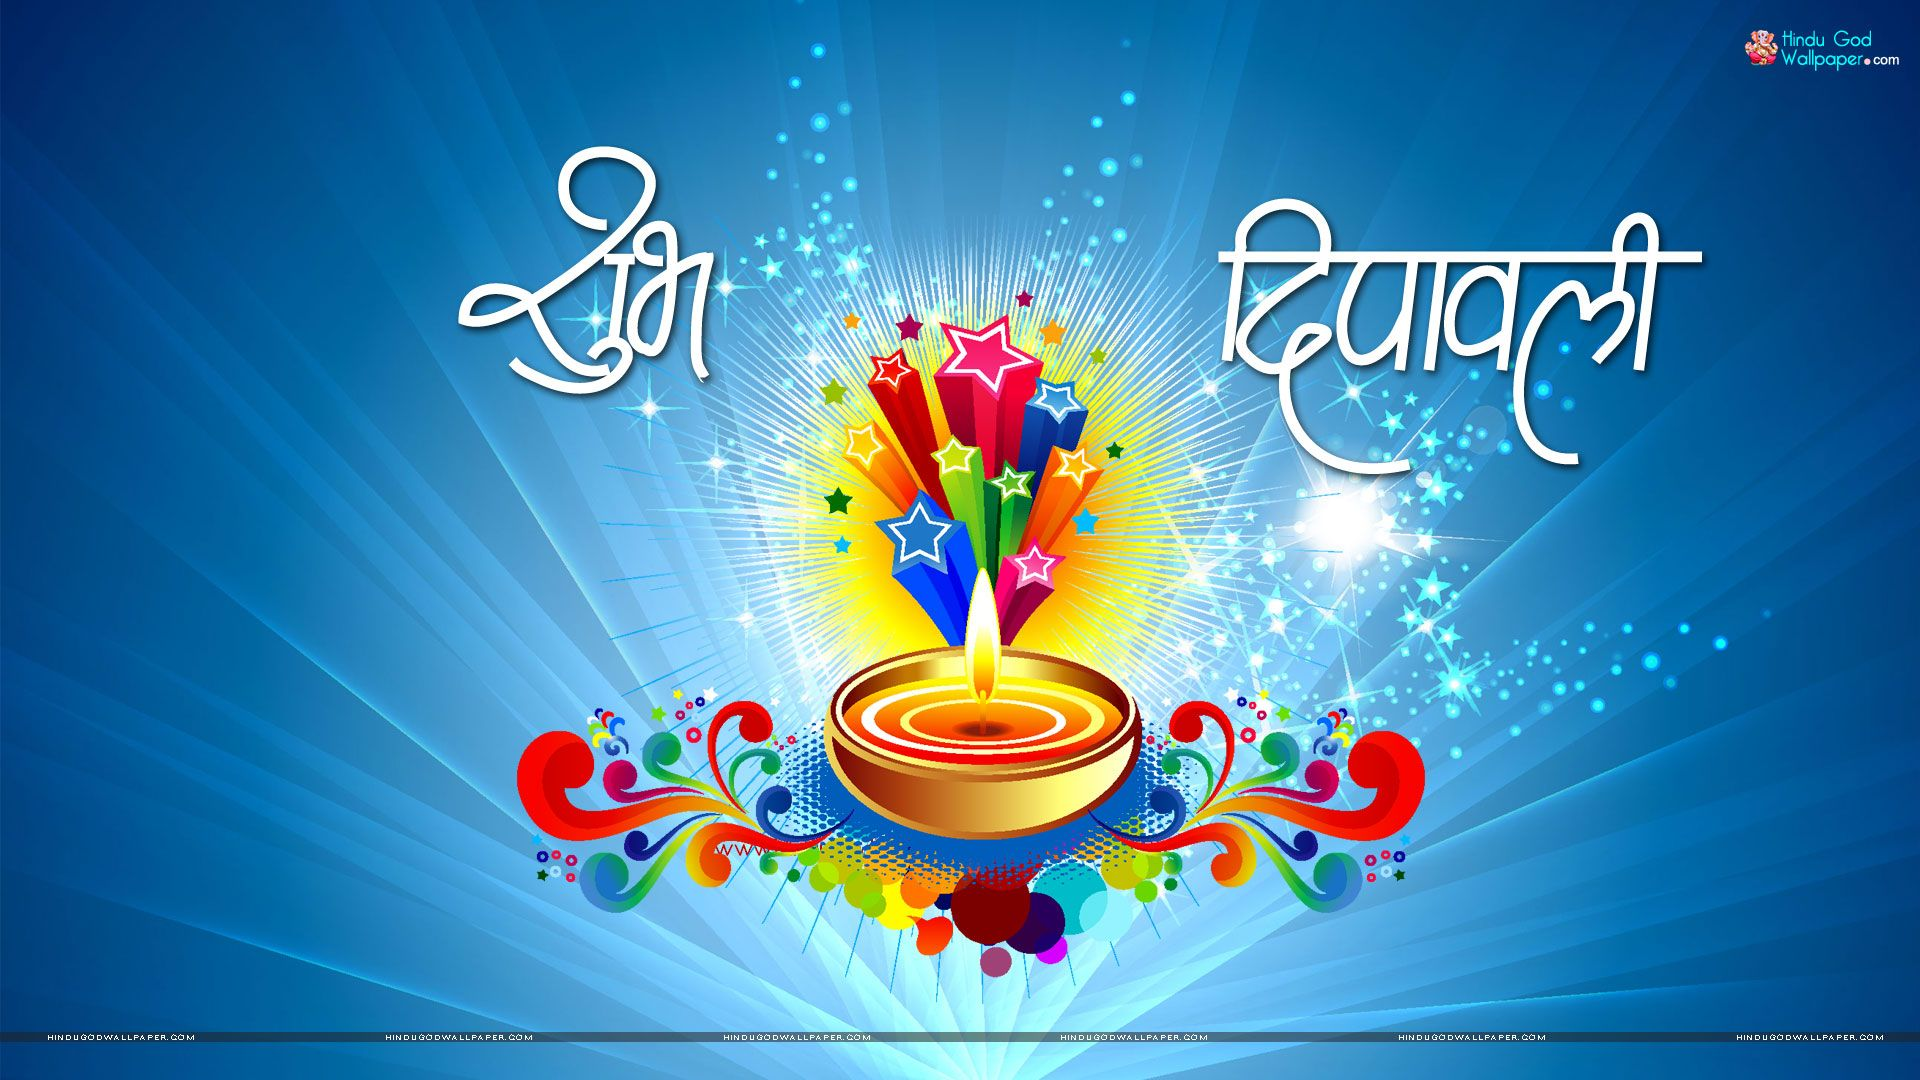 Must see Wallpaper High Resolution Diwali - 8ba28c6bce59ad653c9a7ad8d71c0219  Perfect Image Reference_11943.jpg